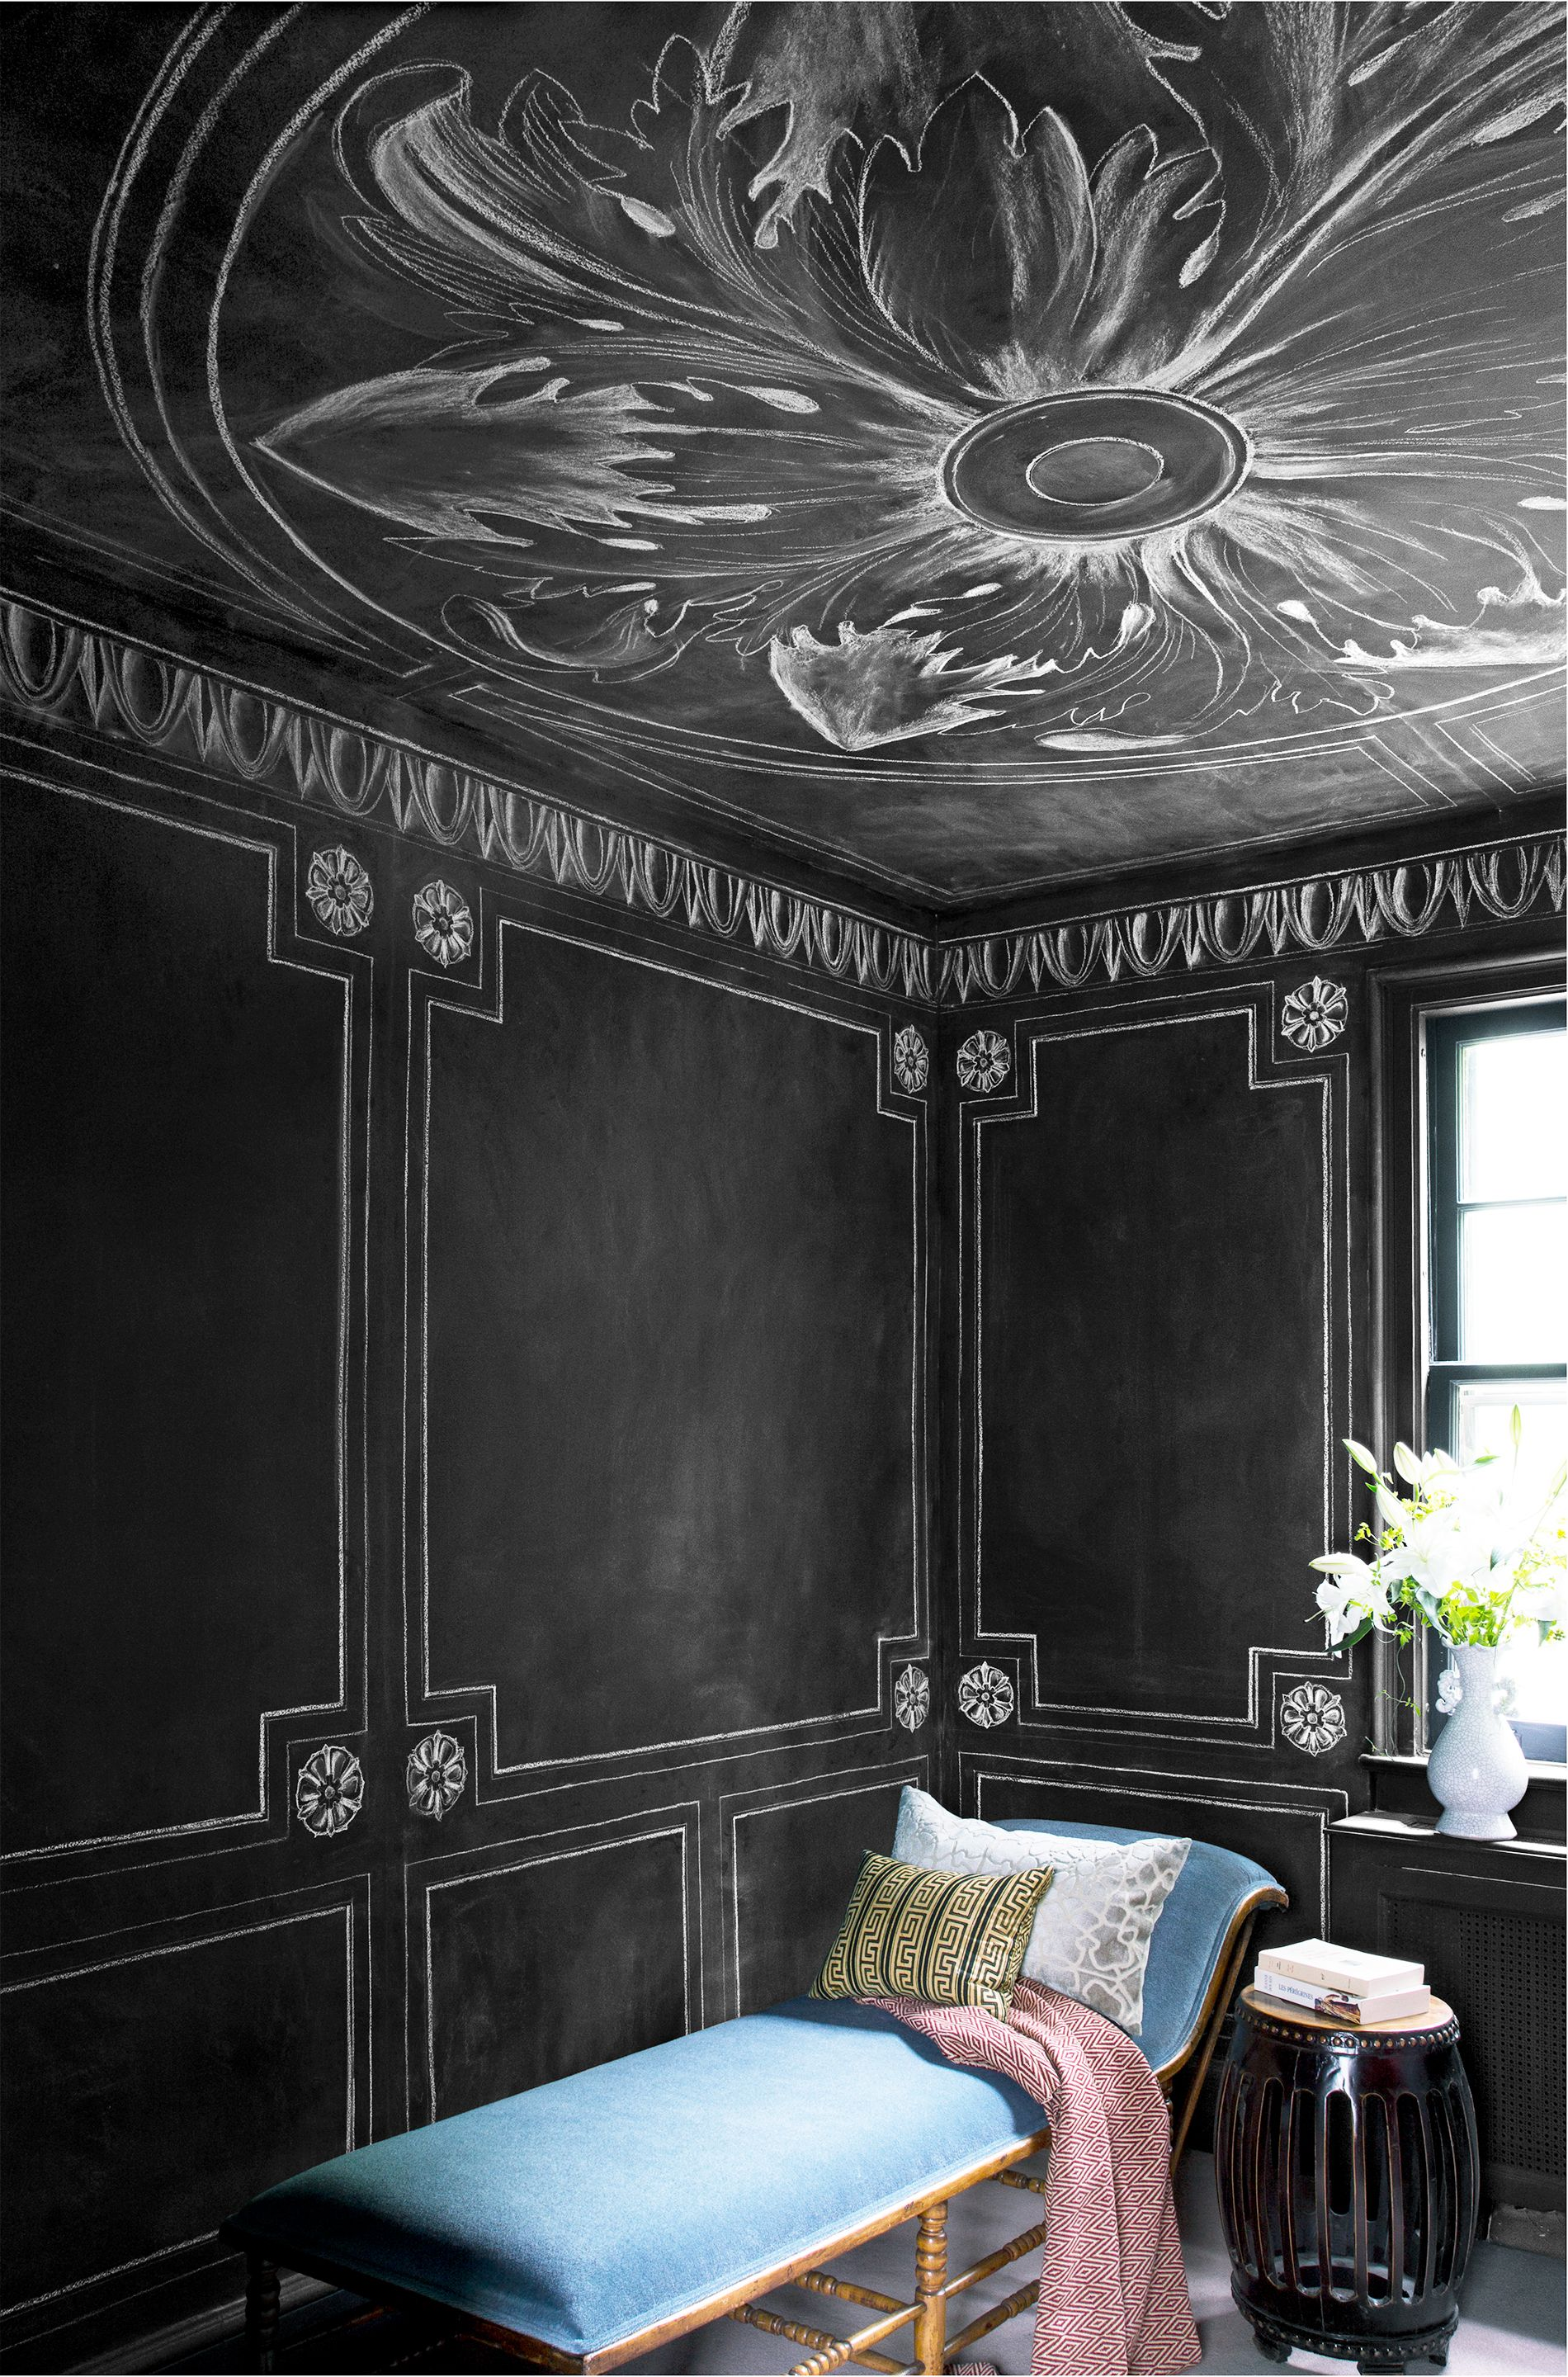 20 Painted Ceilings That Make The Entire Room So Much Cooler